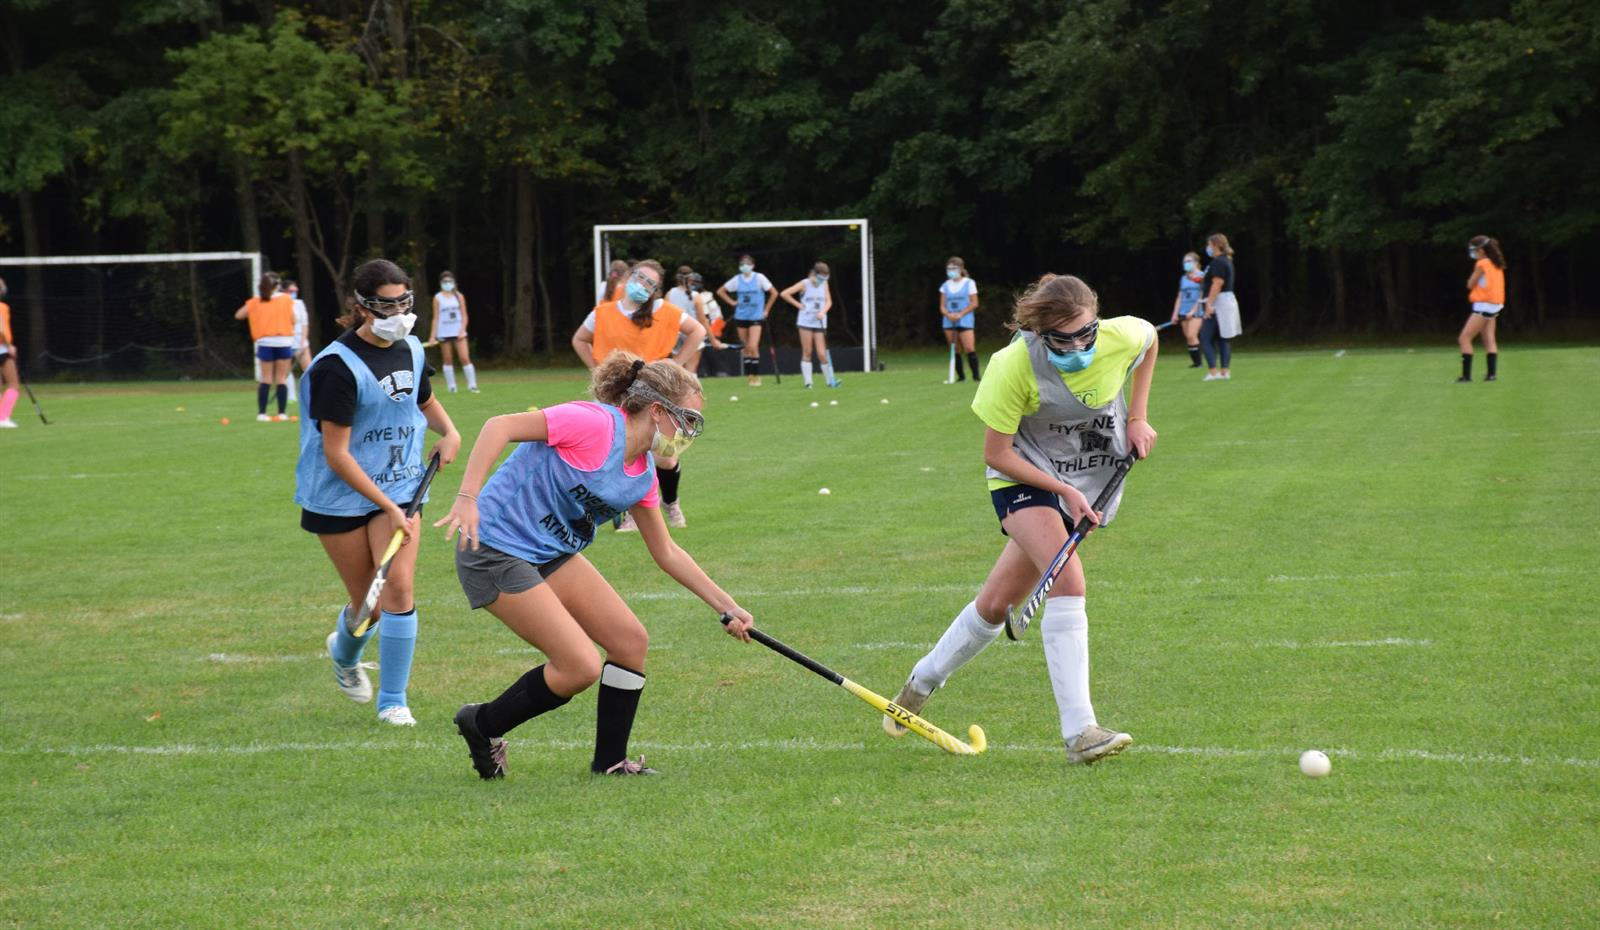 Fall Sports Begin for Rye Neck Panthers